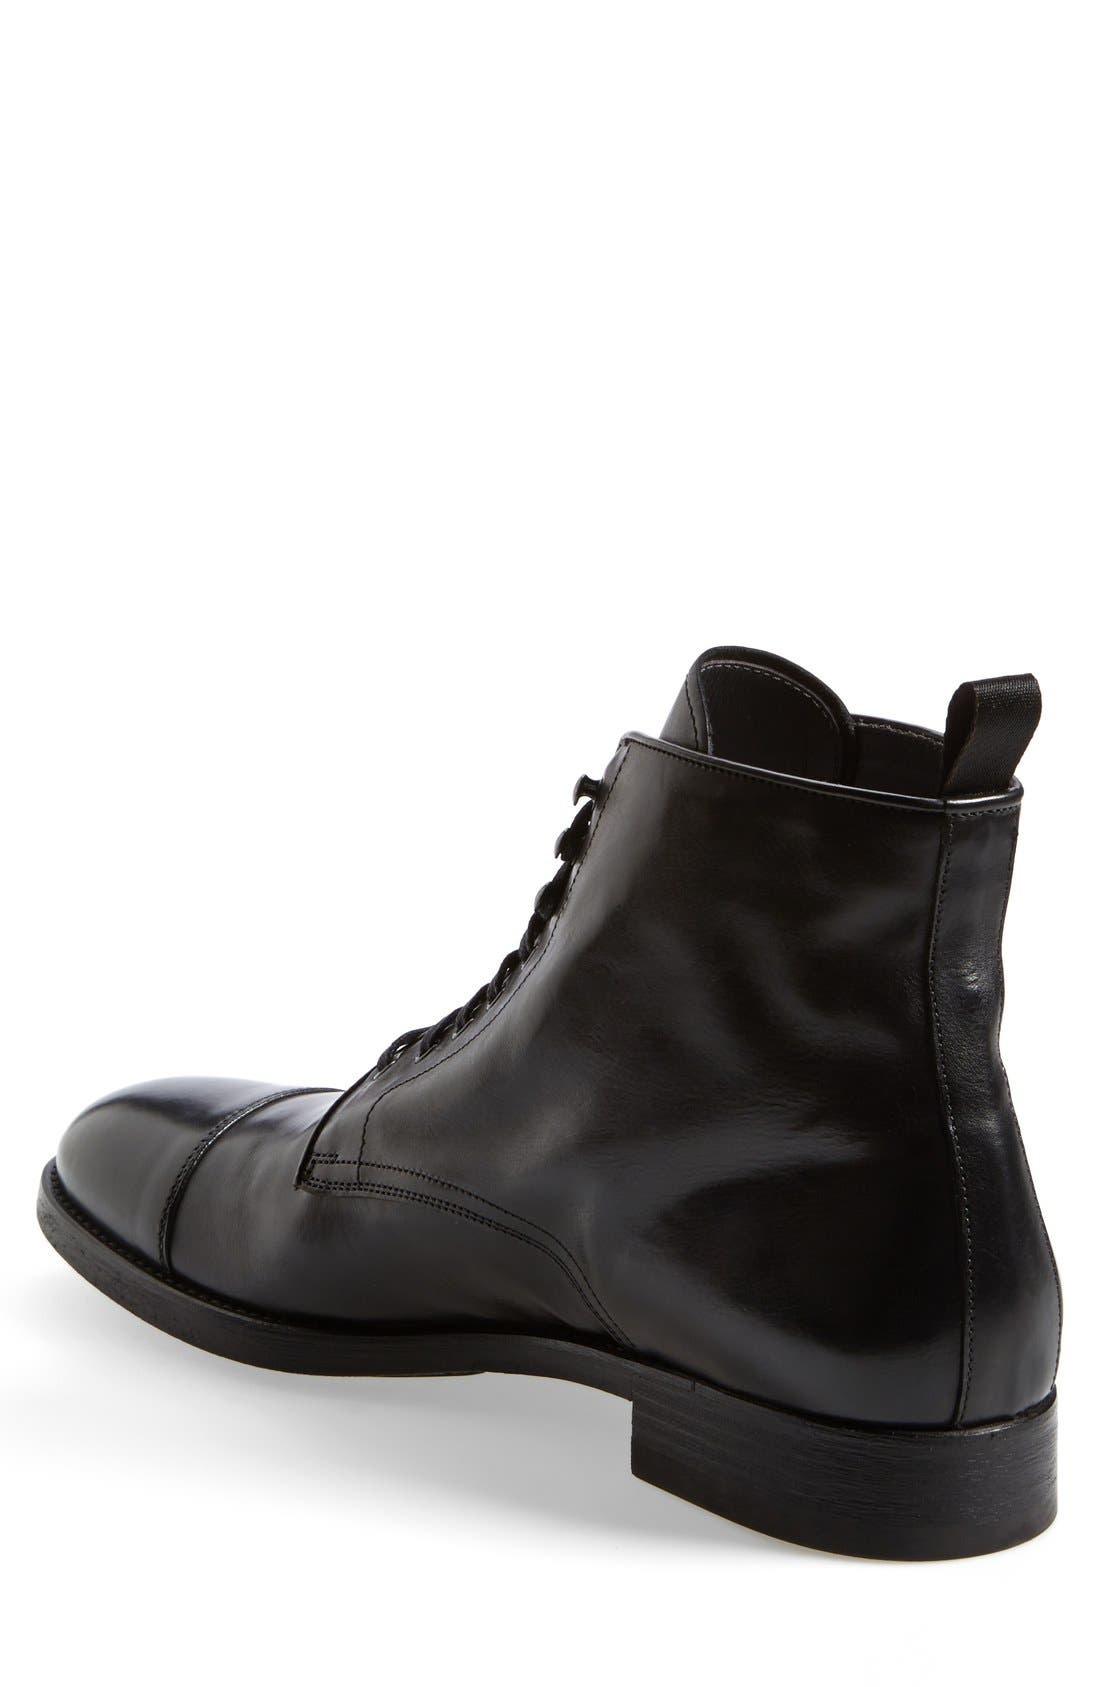 'Stallworth' Cap Toe Boot,                             Alternate thumbnail 2, color,                             Black Leather